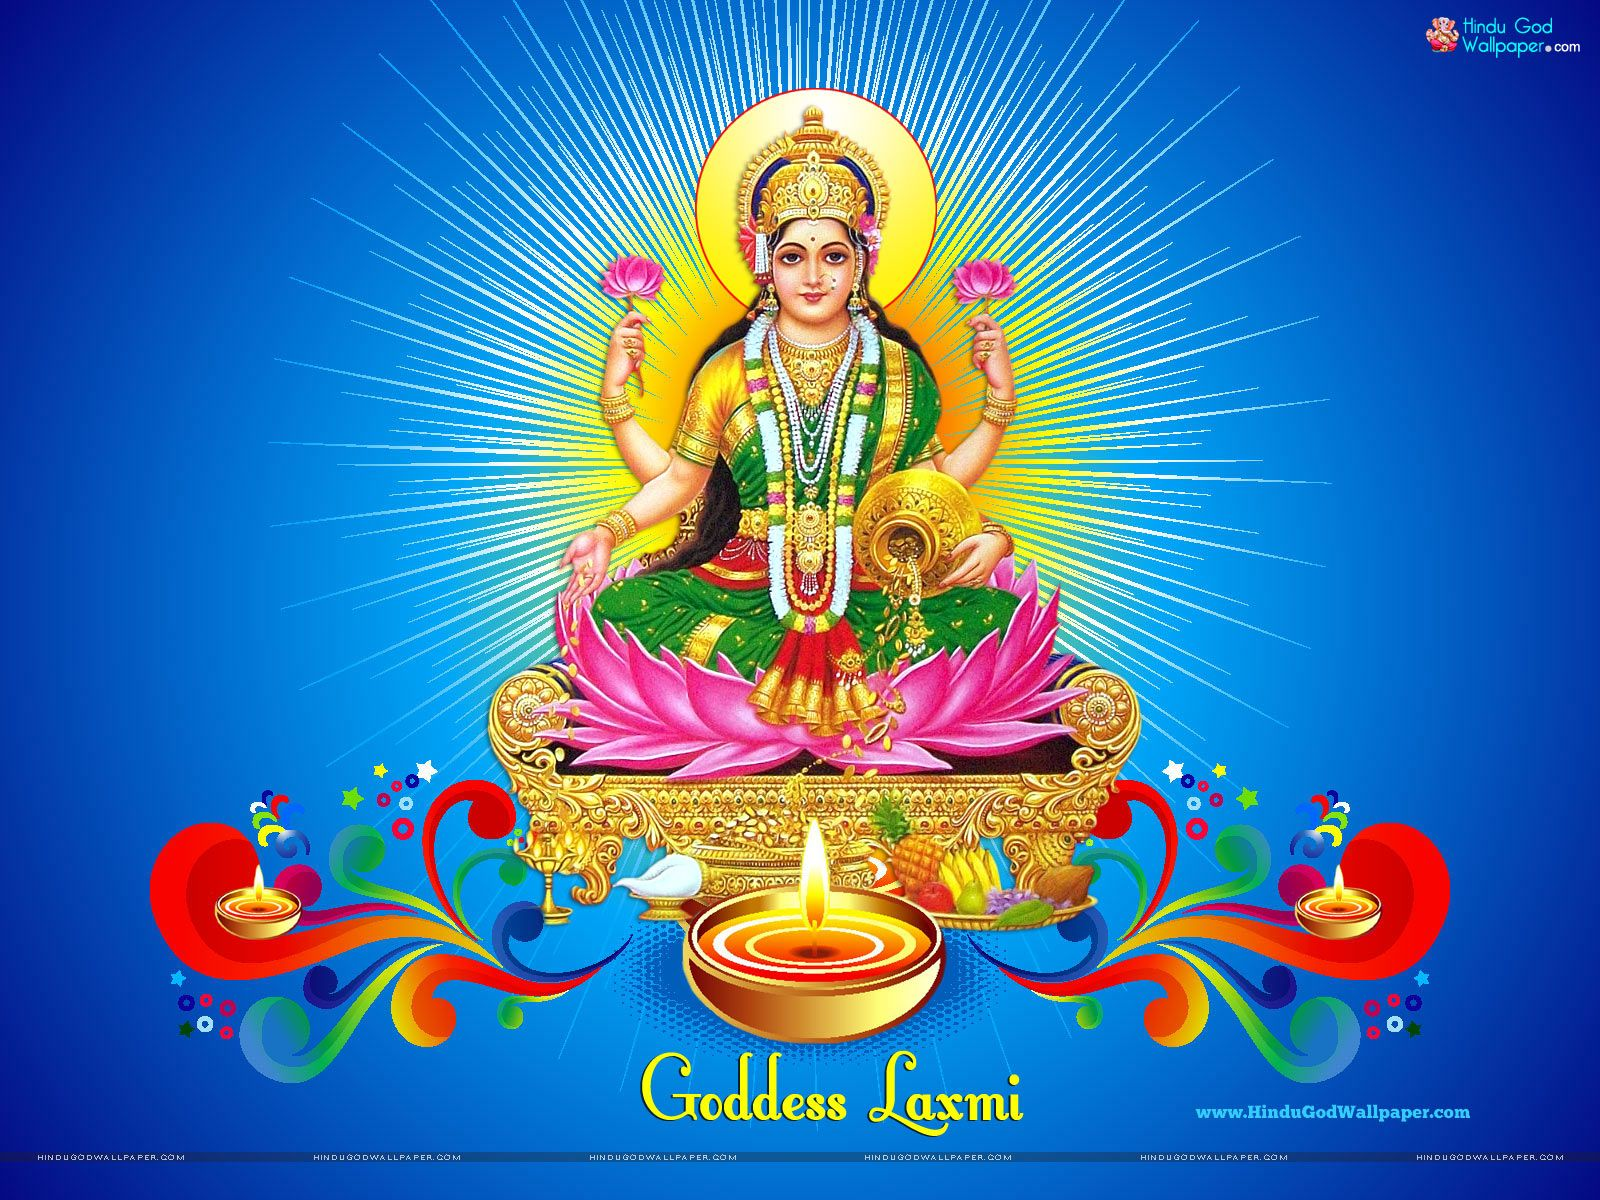 Goddess Laxmi HD Wallpaper Full Size High Resolution ...